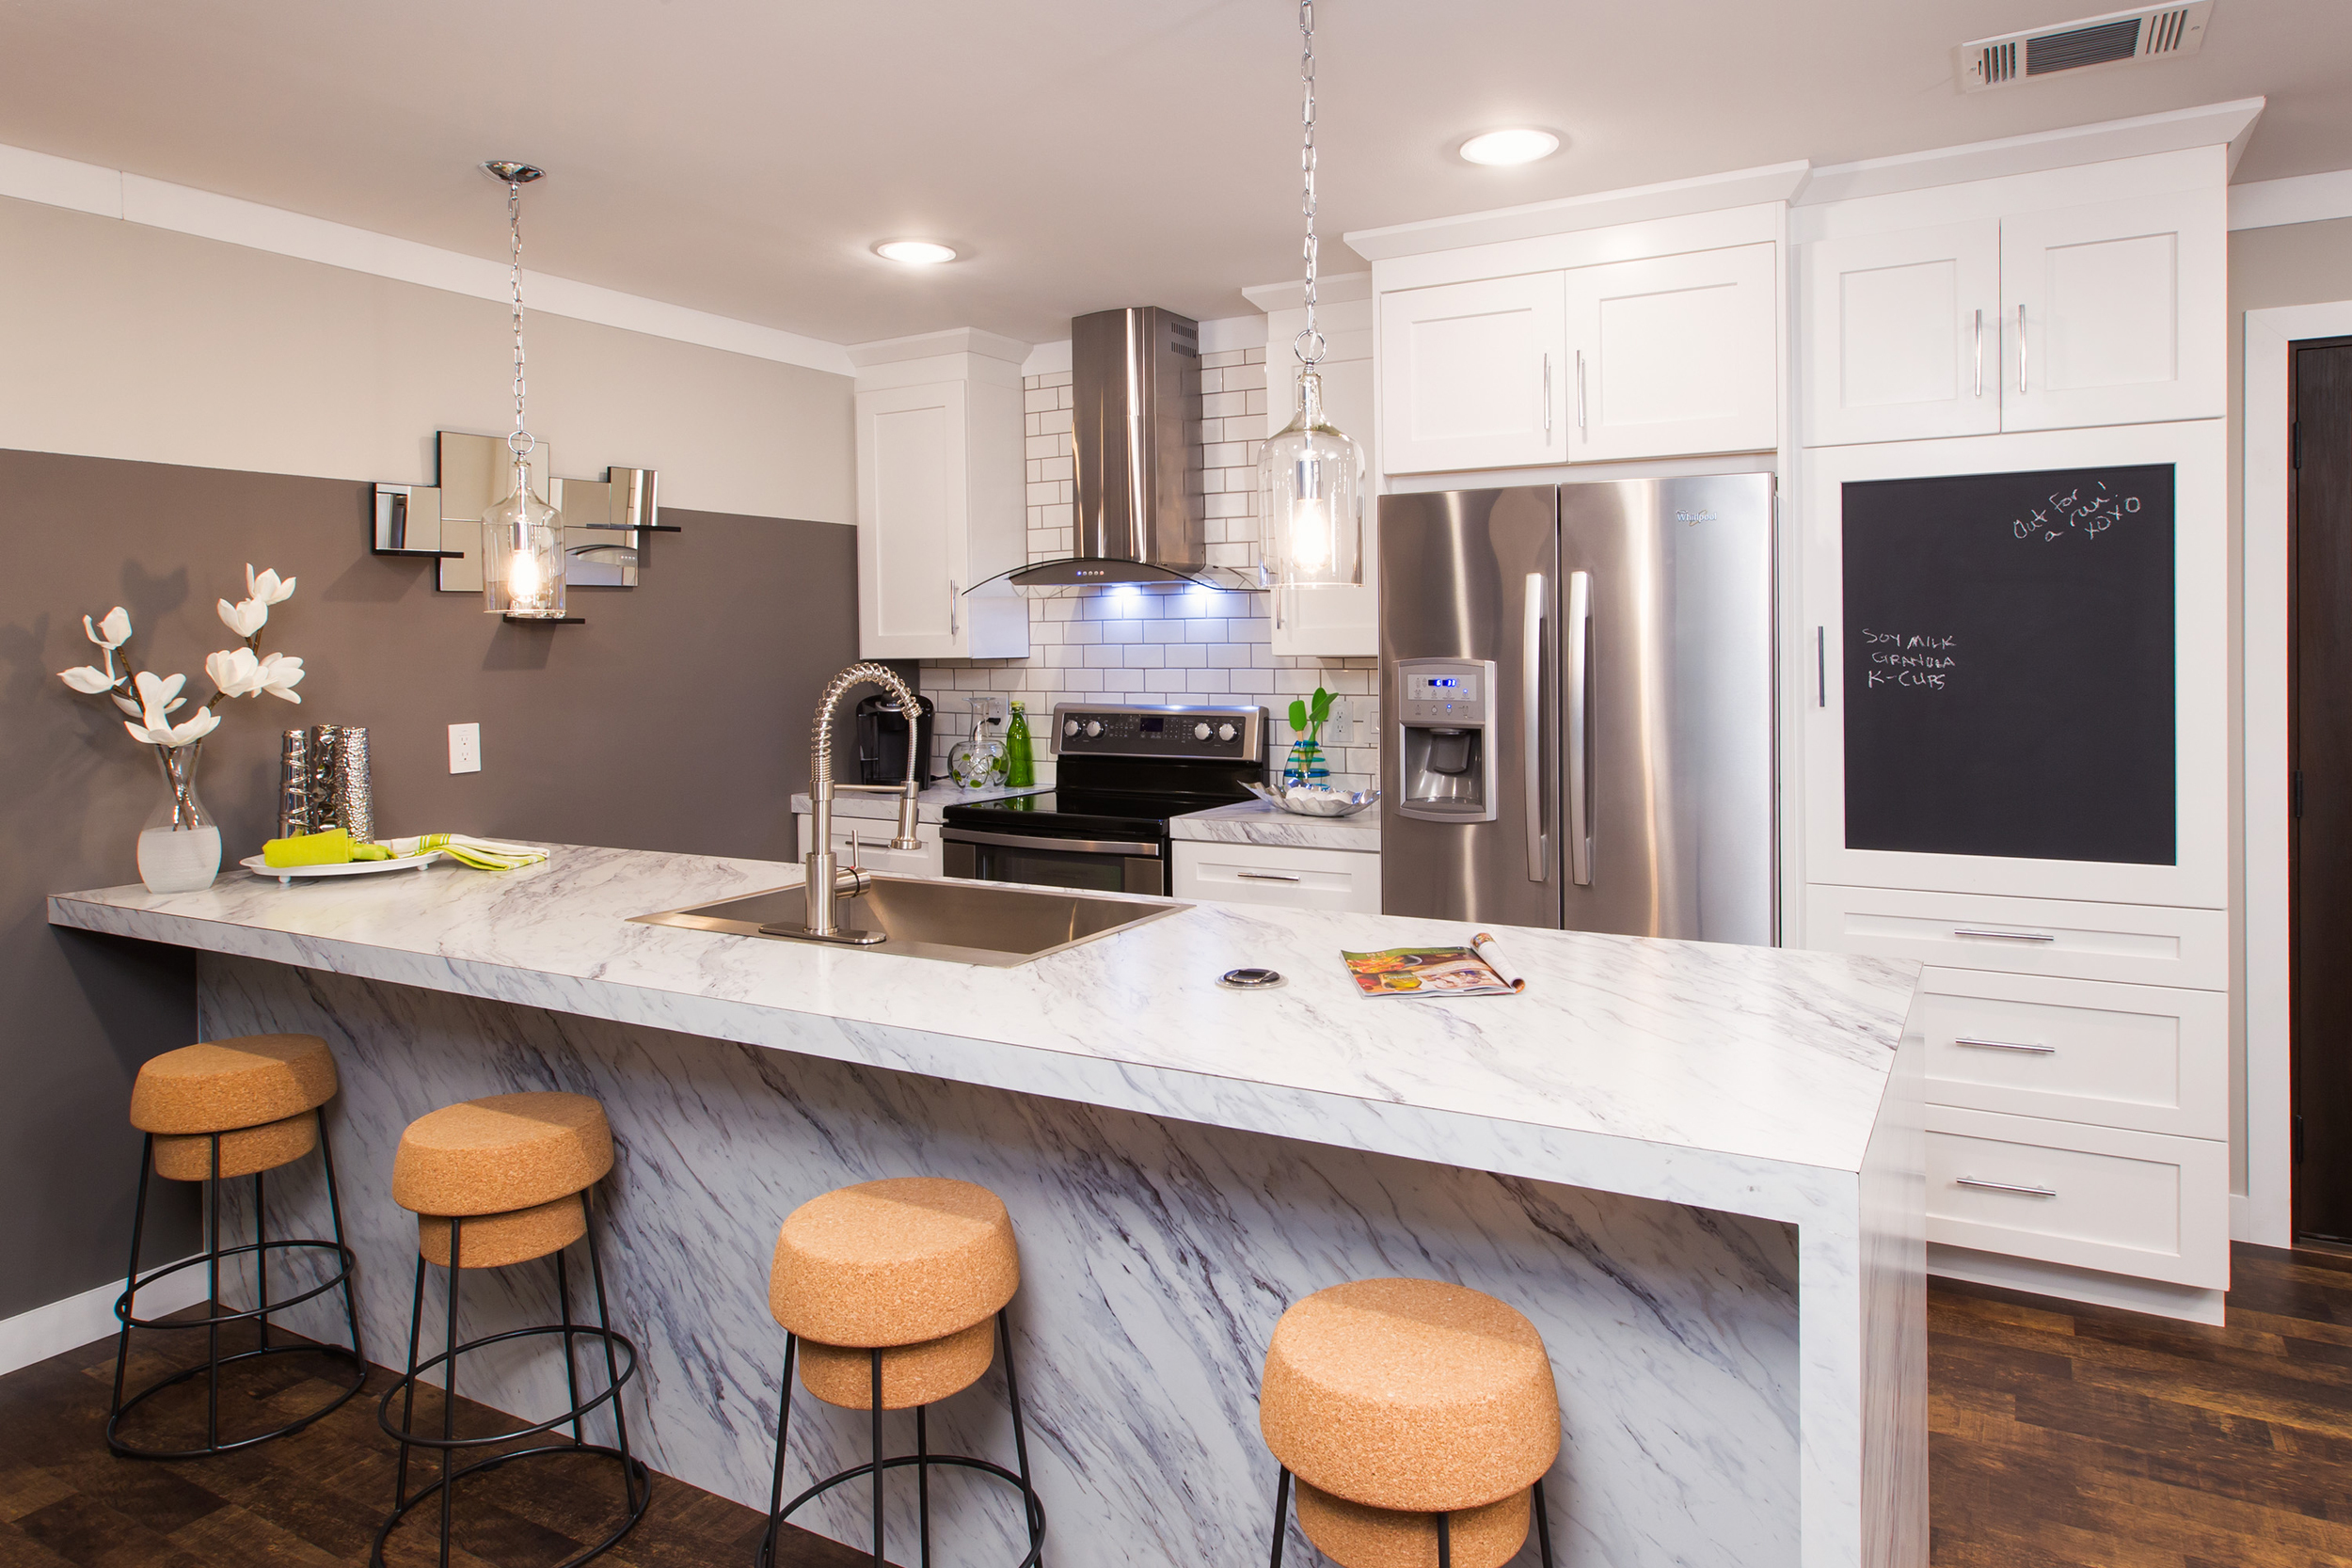 Embrace modern functionality and design in the centrally-located Cook area that includes a flexible prep space, built-in knife block and a pull-up outlet. (Photo: Clayton Homes)